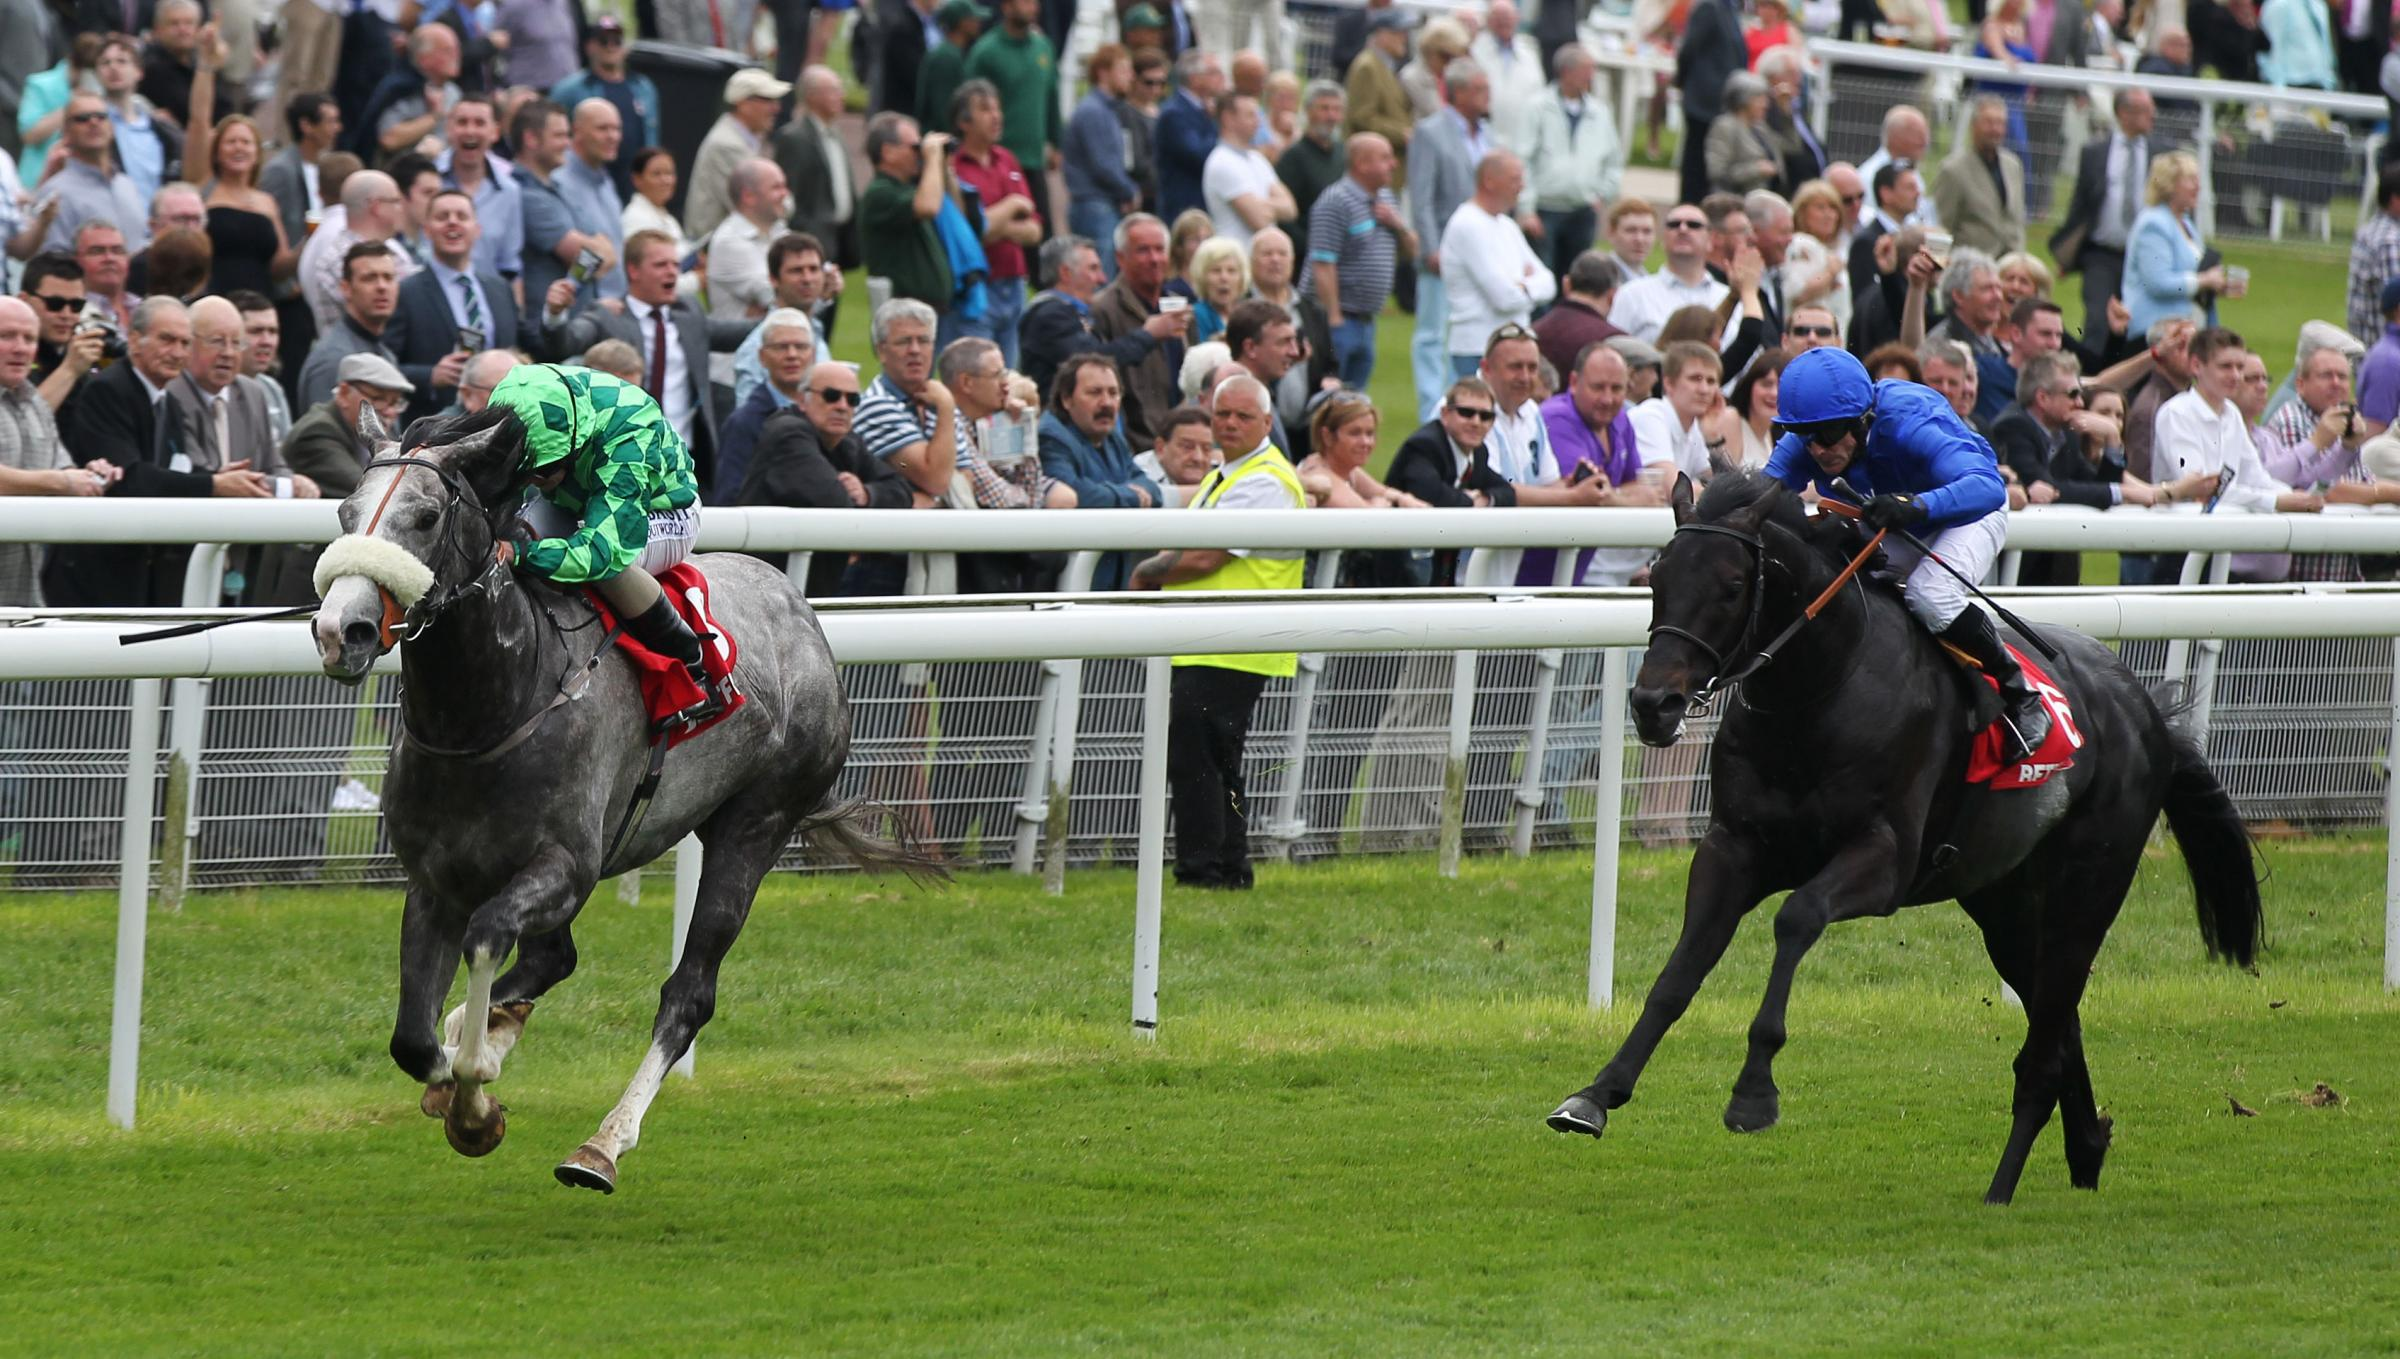 North Yorkshire-trained The Grey Gatsby, left, pulls clear of favourite True Story en route to victory in the Dante Stakes on Knavesmire